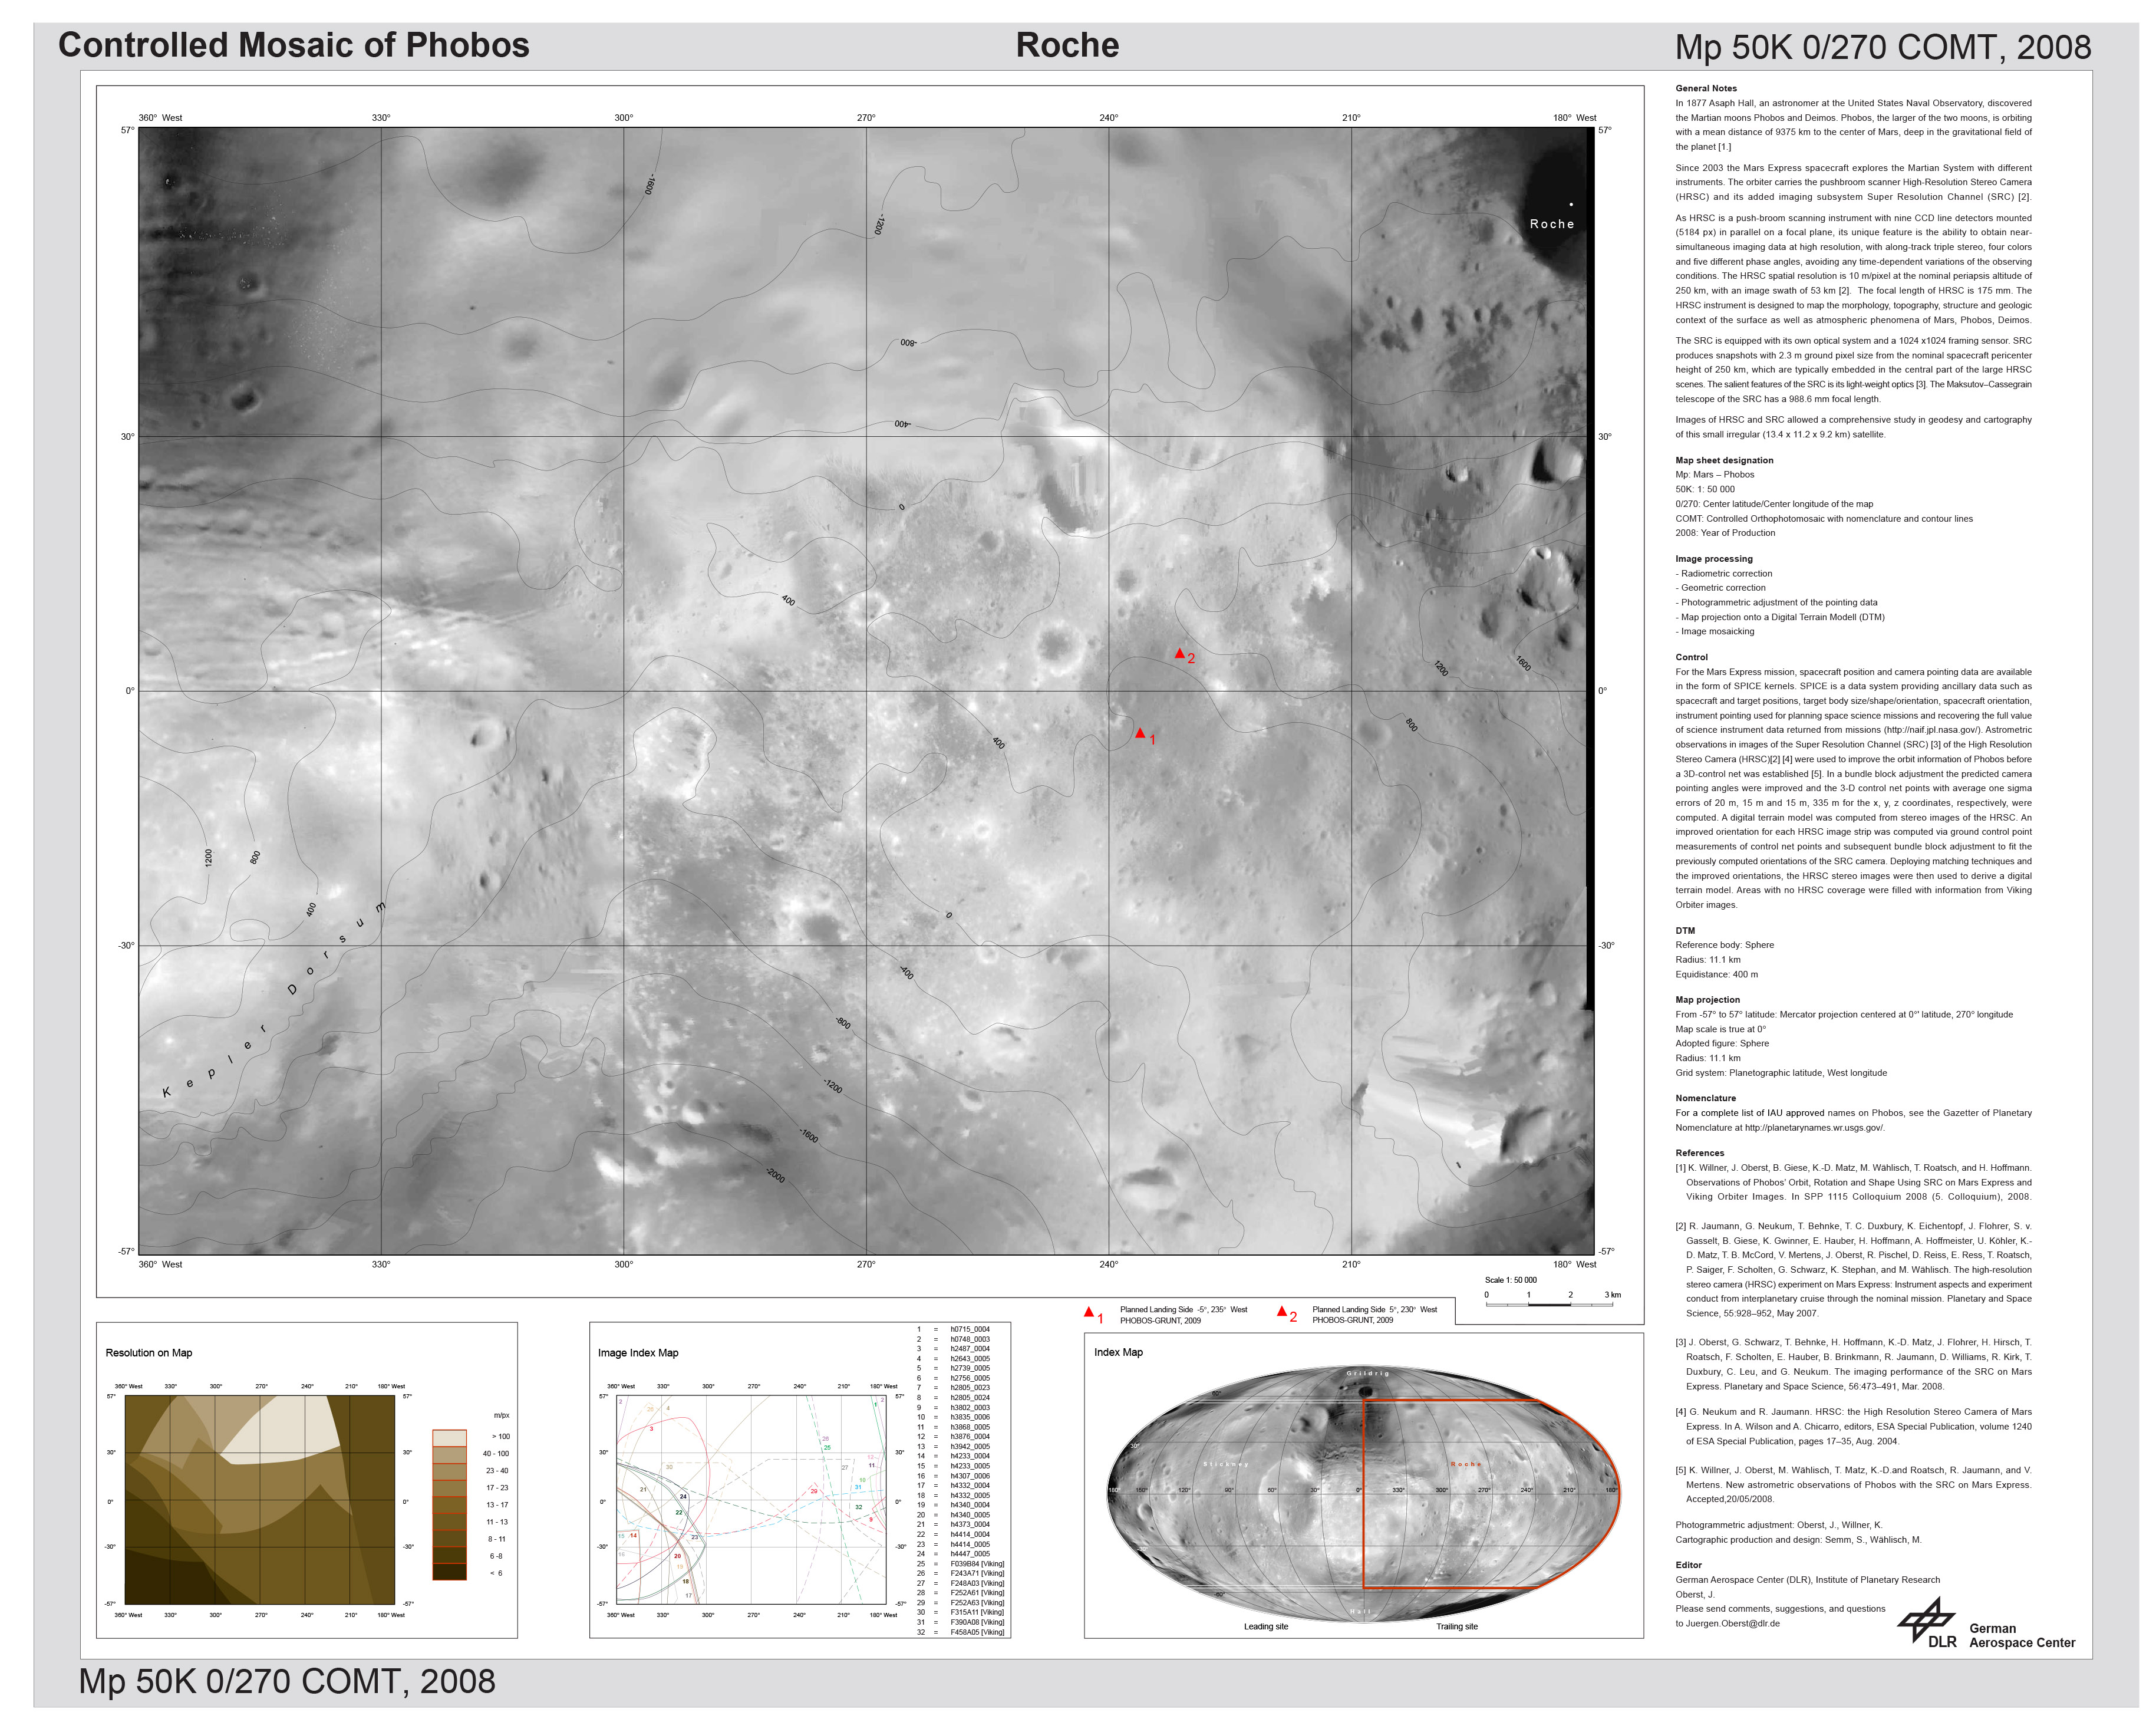 The Martian Moon Phobos; A Geodetic Analysis of its Motion, Orie